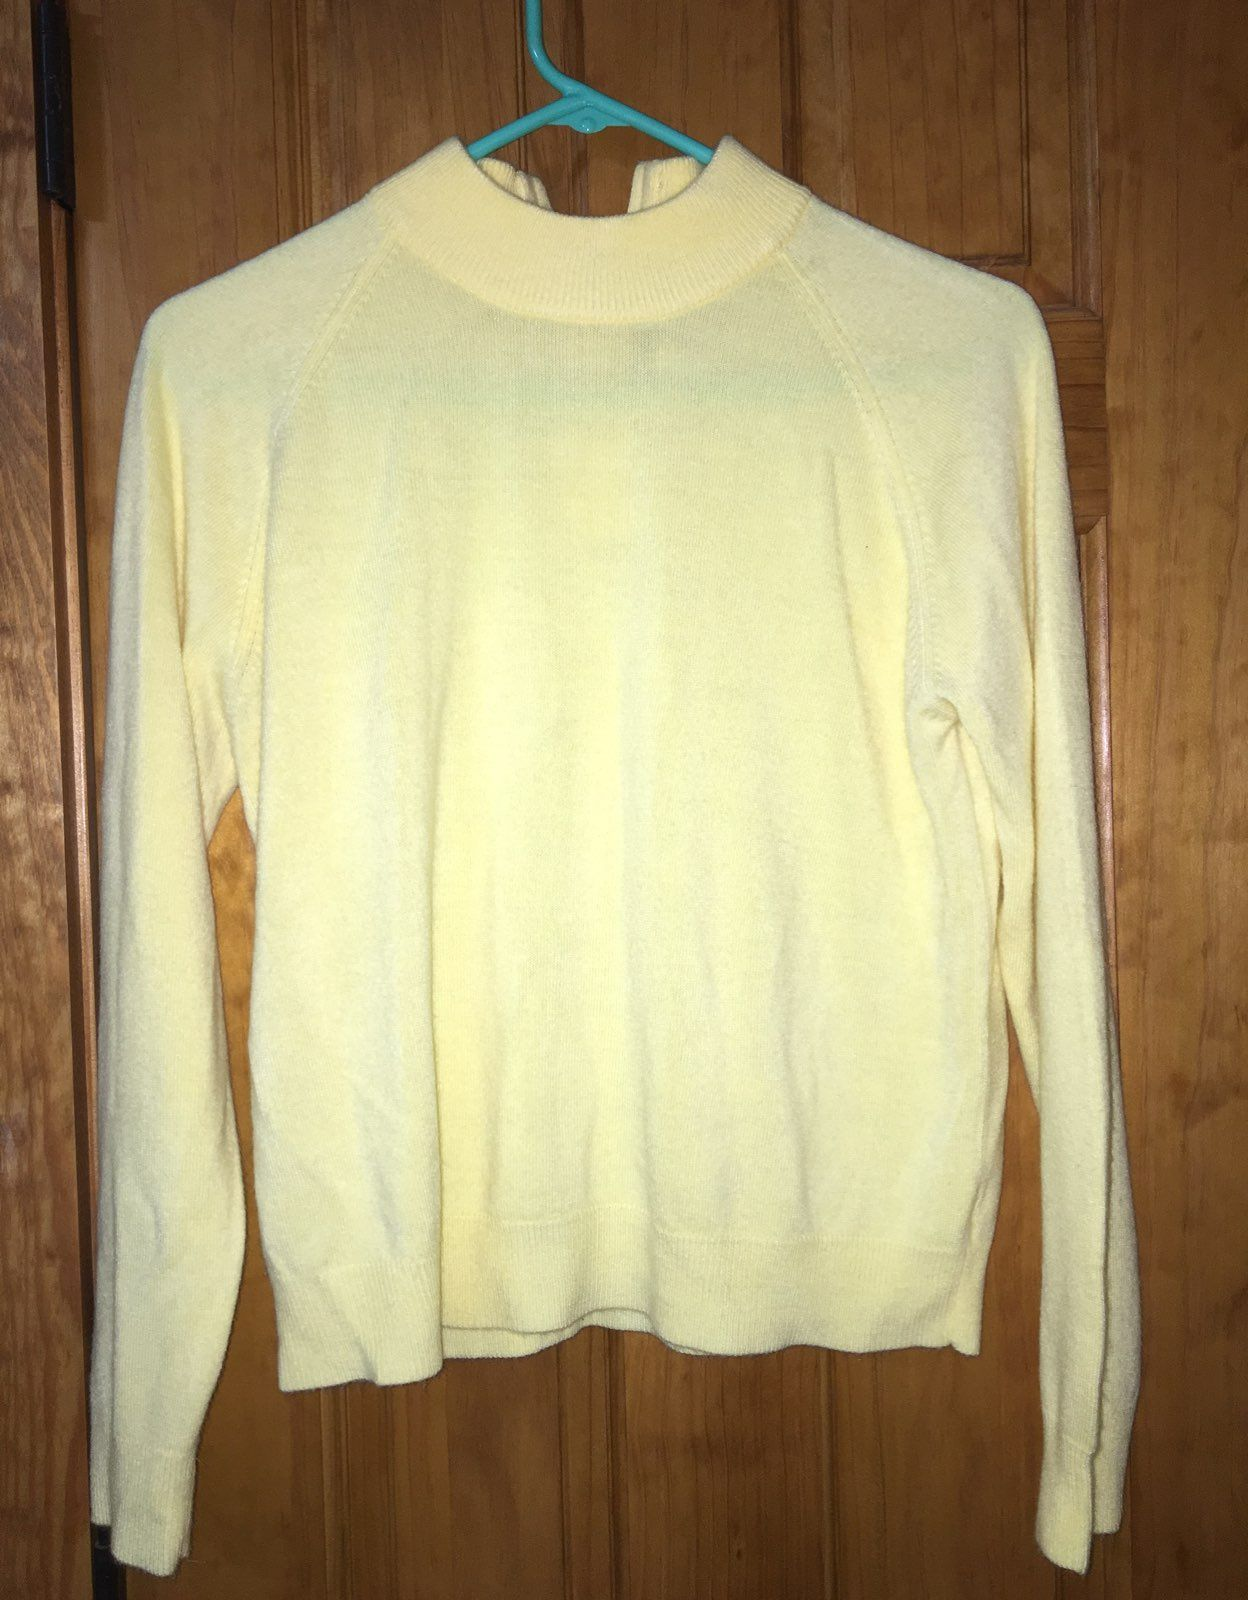 Cozy Yellow Sweater - Mercari: BUY & SELL THINGS YOU LOVE